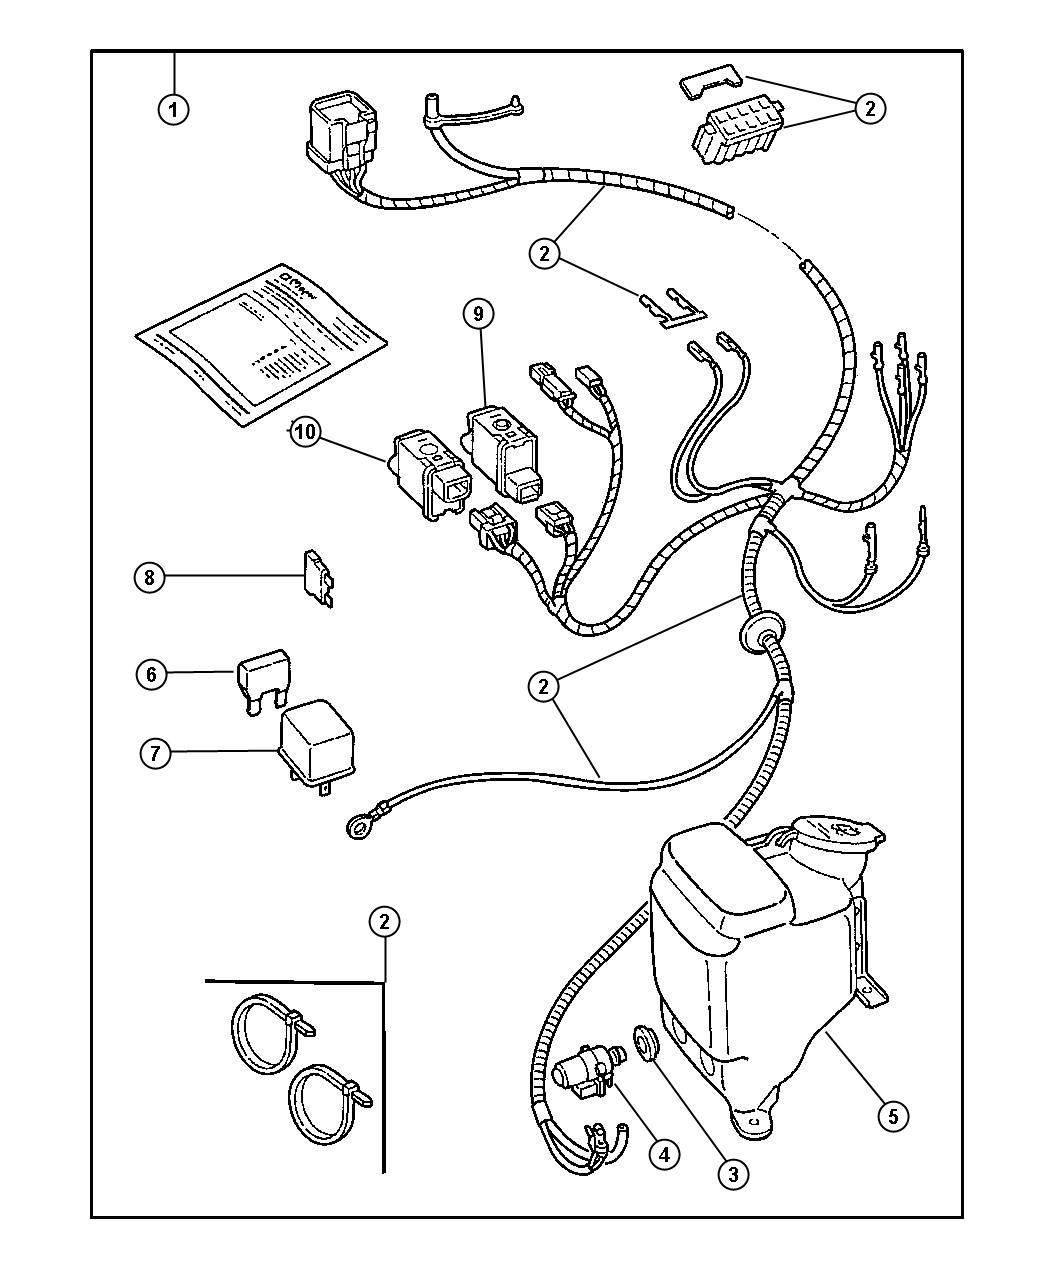 00i55548 Jeep Tj Radio Wiring Diagram Windshield Wiper on buick roadmaster radio wiring diagram, dodge ram 2500 radio wiring diagram, jeep tj radio connector, chrysler crossfire radio wiring diagram, hyundai santa fe radio wiring diagram, dodge ram 3500 radio wiring diagram, jeep wrangler ac wiring diagram, honda s2000 radio wiring diagram, jeep tj car audio, jeep tj radio schematic, dodge charger radio wiring diagram, jeep wrangler alternator wiring diagram, oldsmobile alero radio wiring diagram, 97 wrangler radio wiring diagram, jeep cherokee laredo radio wiring diagram, subaru wrx radio wiring diagram, dodge ram 1500 radio wiring diagram, jeep tj dash lights, jeep compass radio wiring diagram, 2002 jeep wrangler stereo wiring diagram,